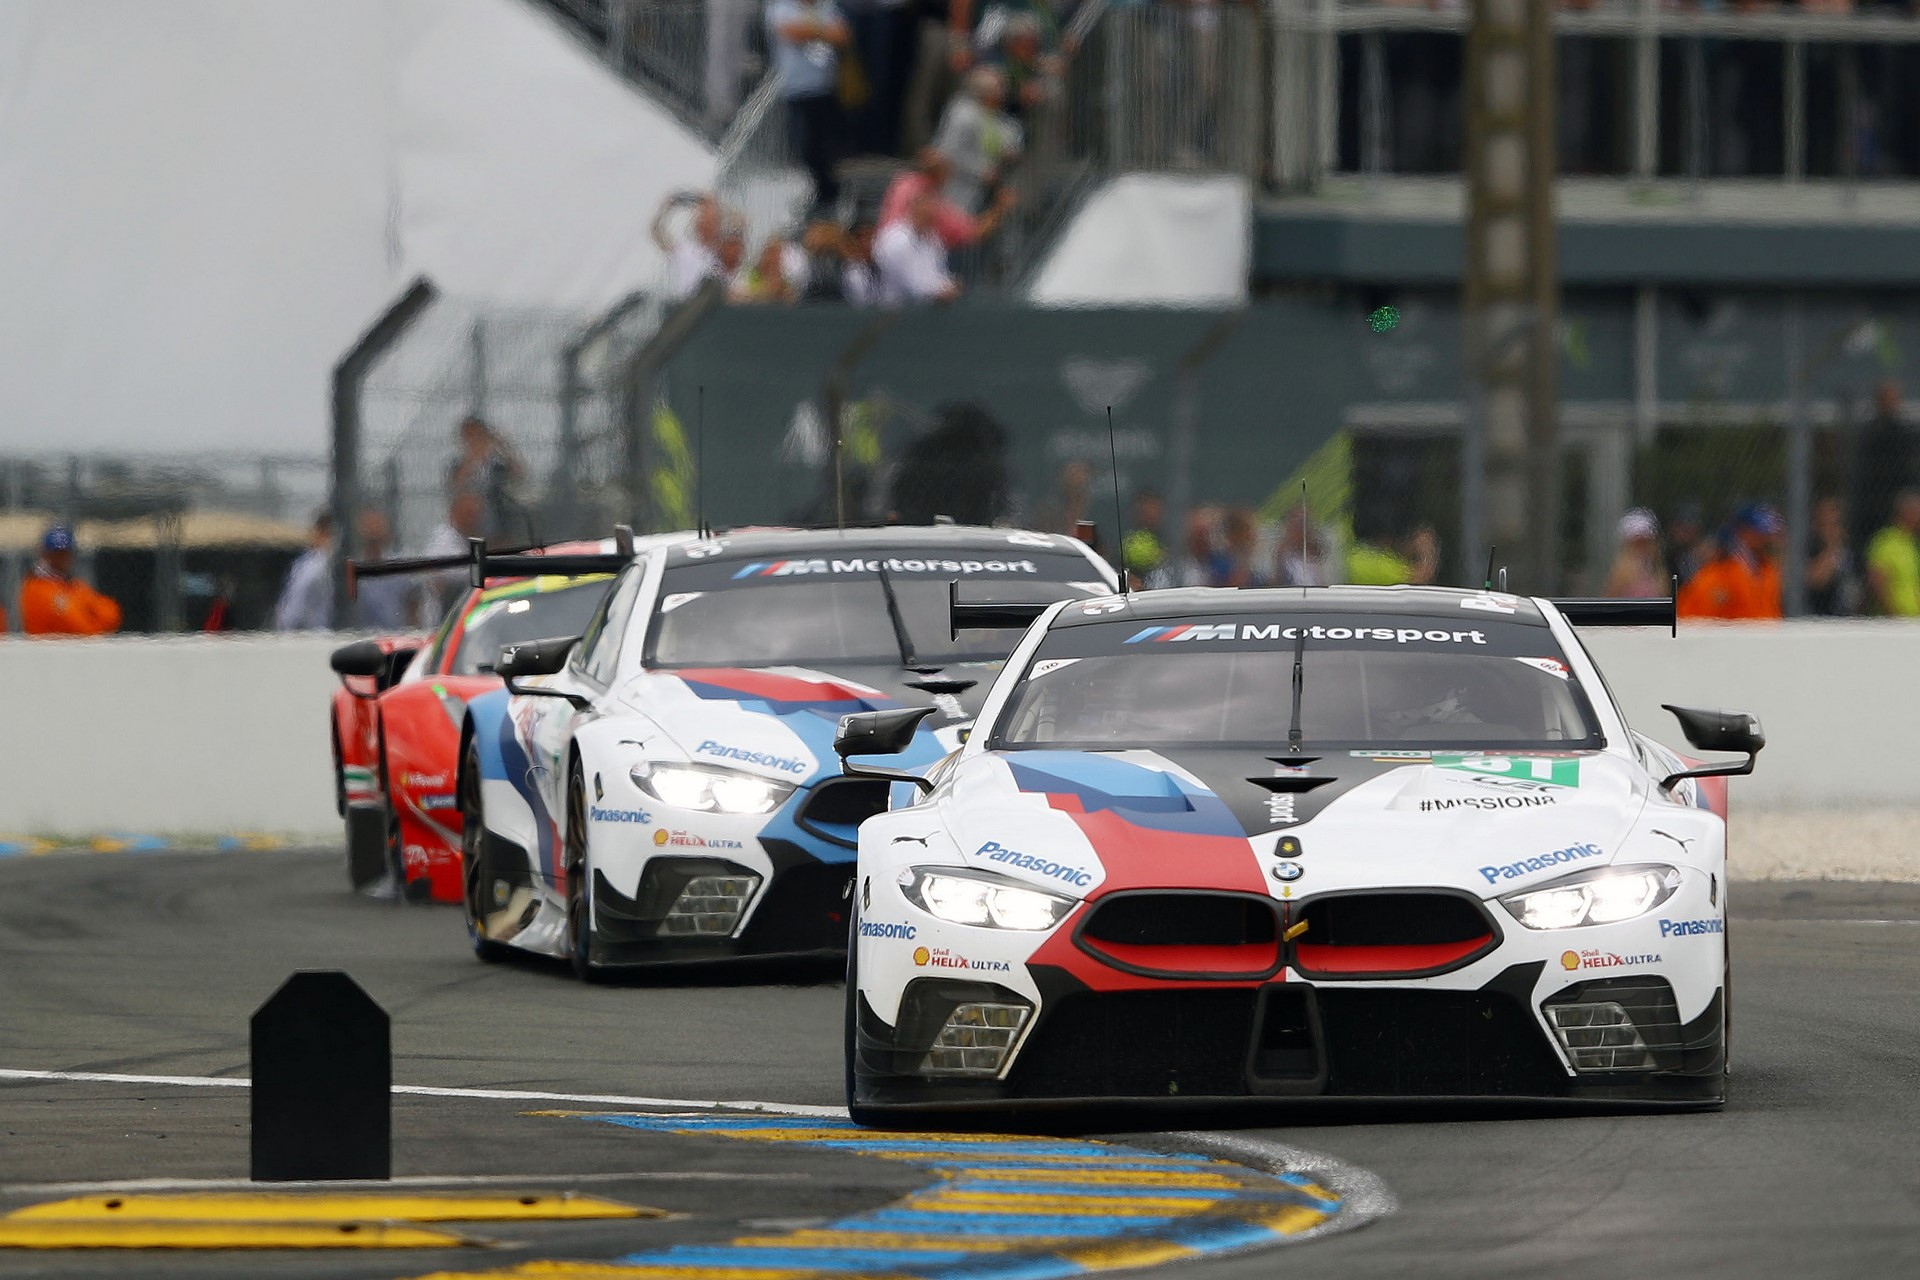 Le Mans (FRA), 16th June 2018. BMW M Motorsport, FIA World Endurance Championship (WEC), 24 Hours of Le Mans, #81 BMW M8 GTE, Martin Tomczyk (GER), Philipp Eng (AUT), Nick Catsburg (NED) and #82 BMW M8 GTE, António Félix da Costa (POR), Alexander Sims (GBR), Augusto Farfus (BRA).